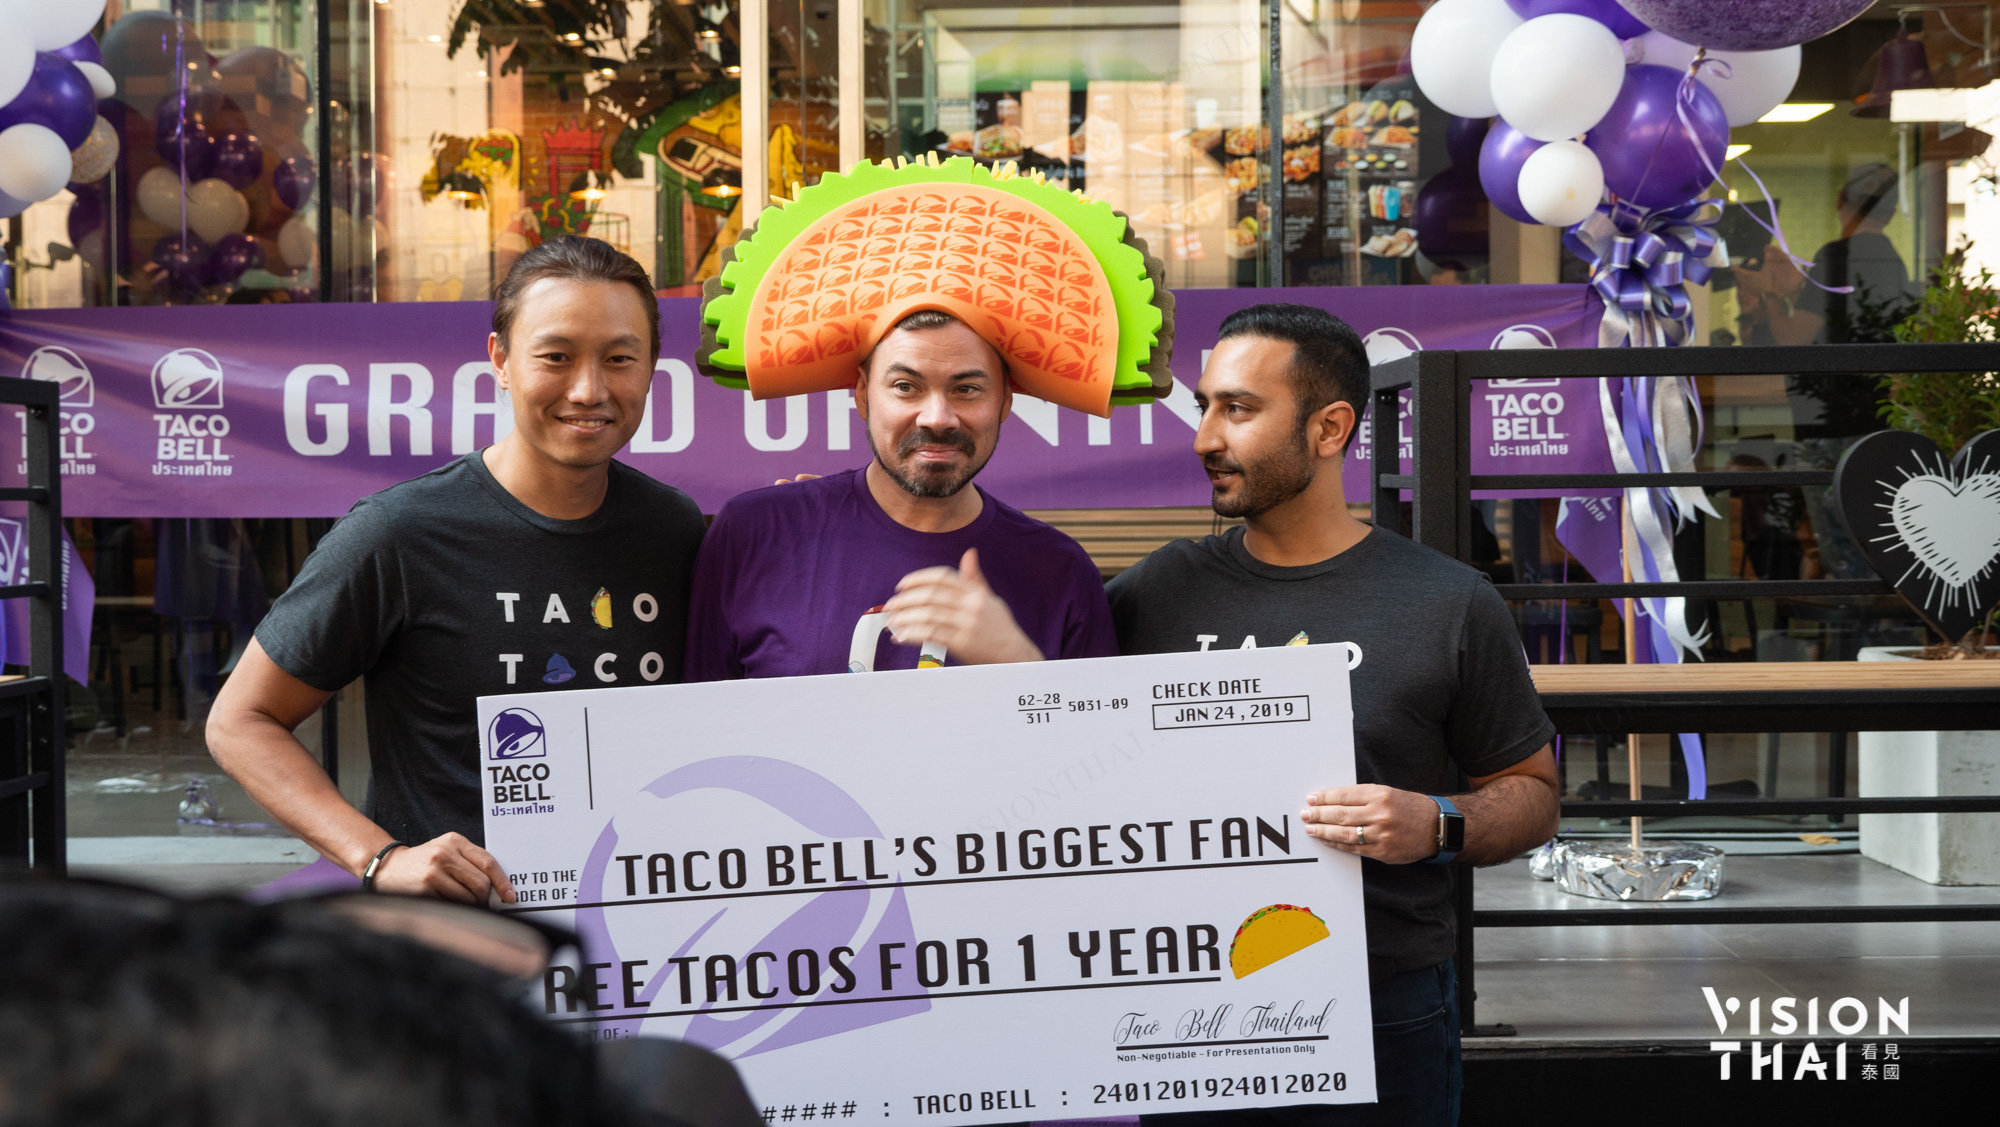 Lucky winner, One Year free taco offered by Taco Bell Thailand